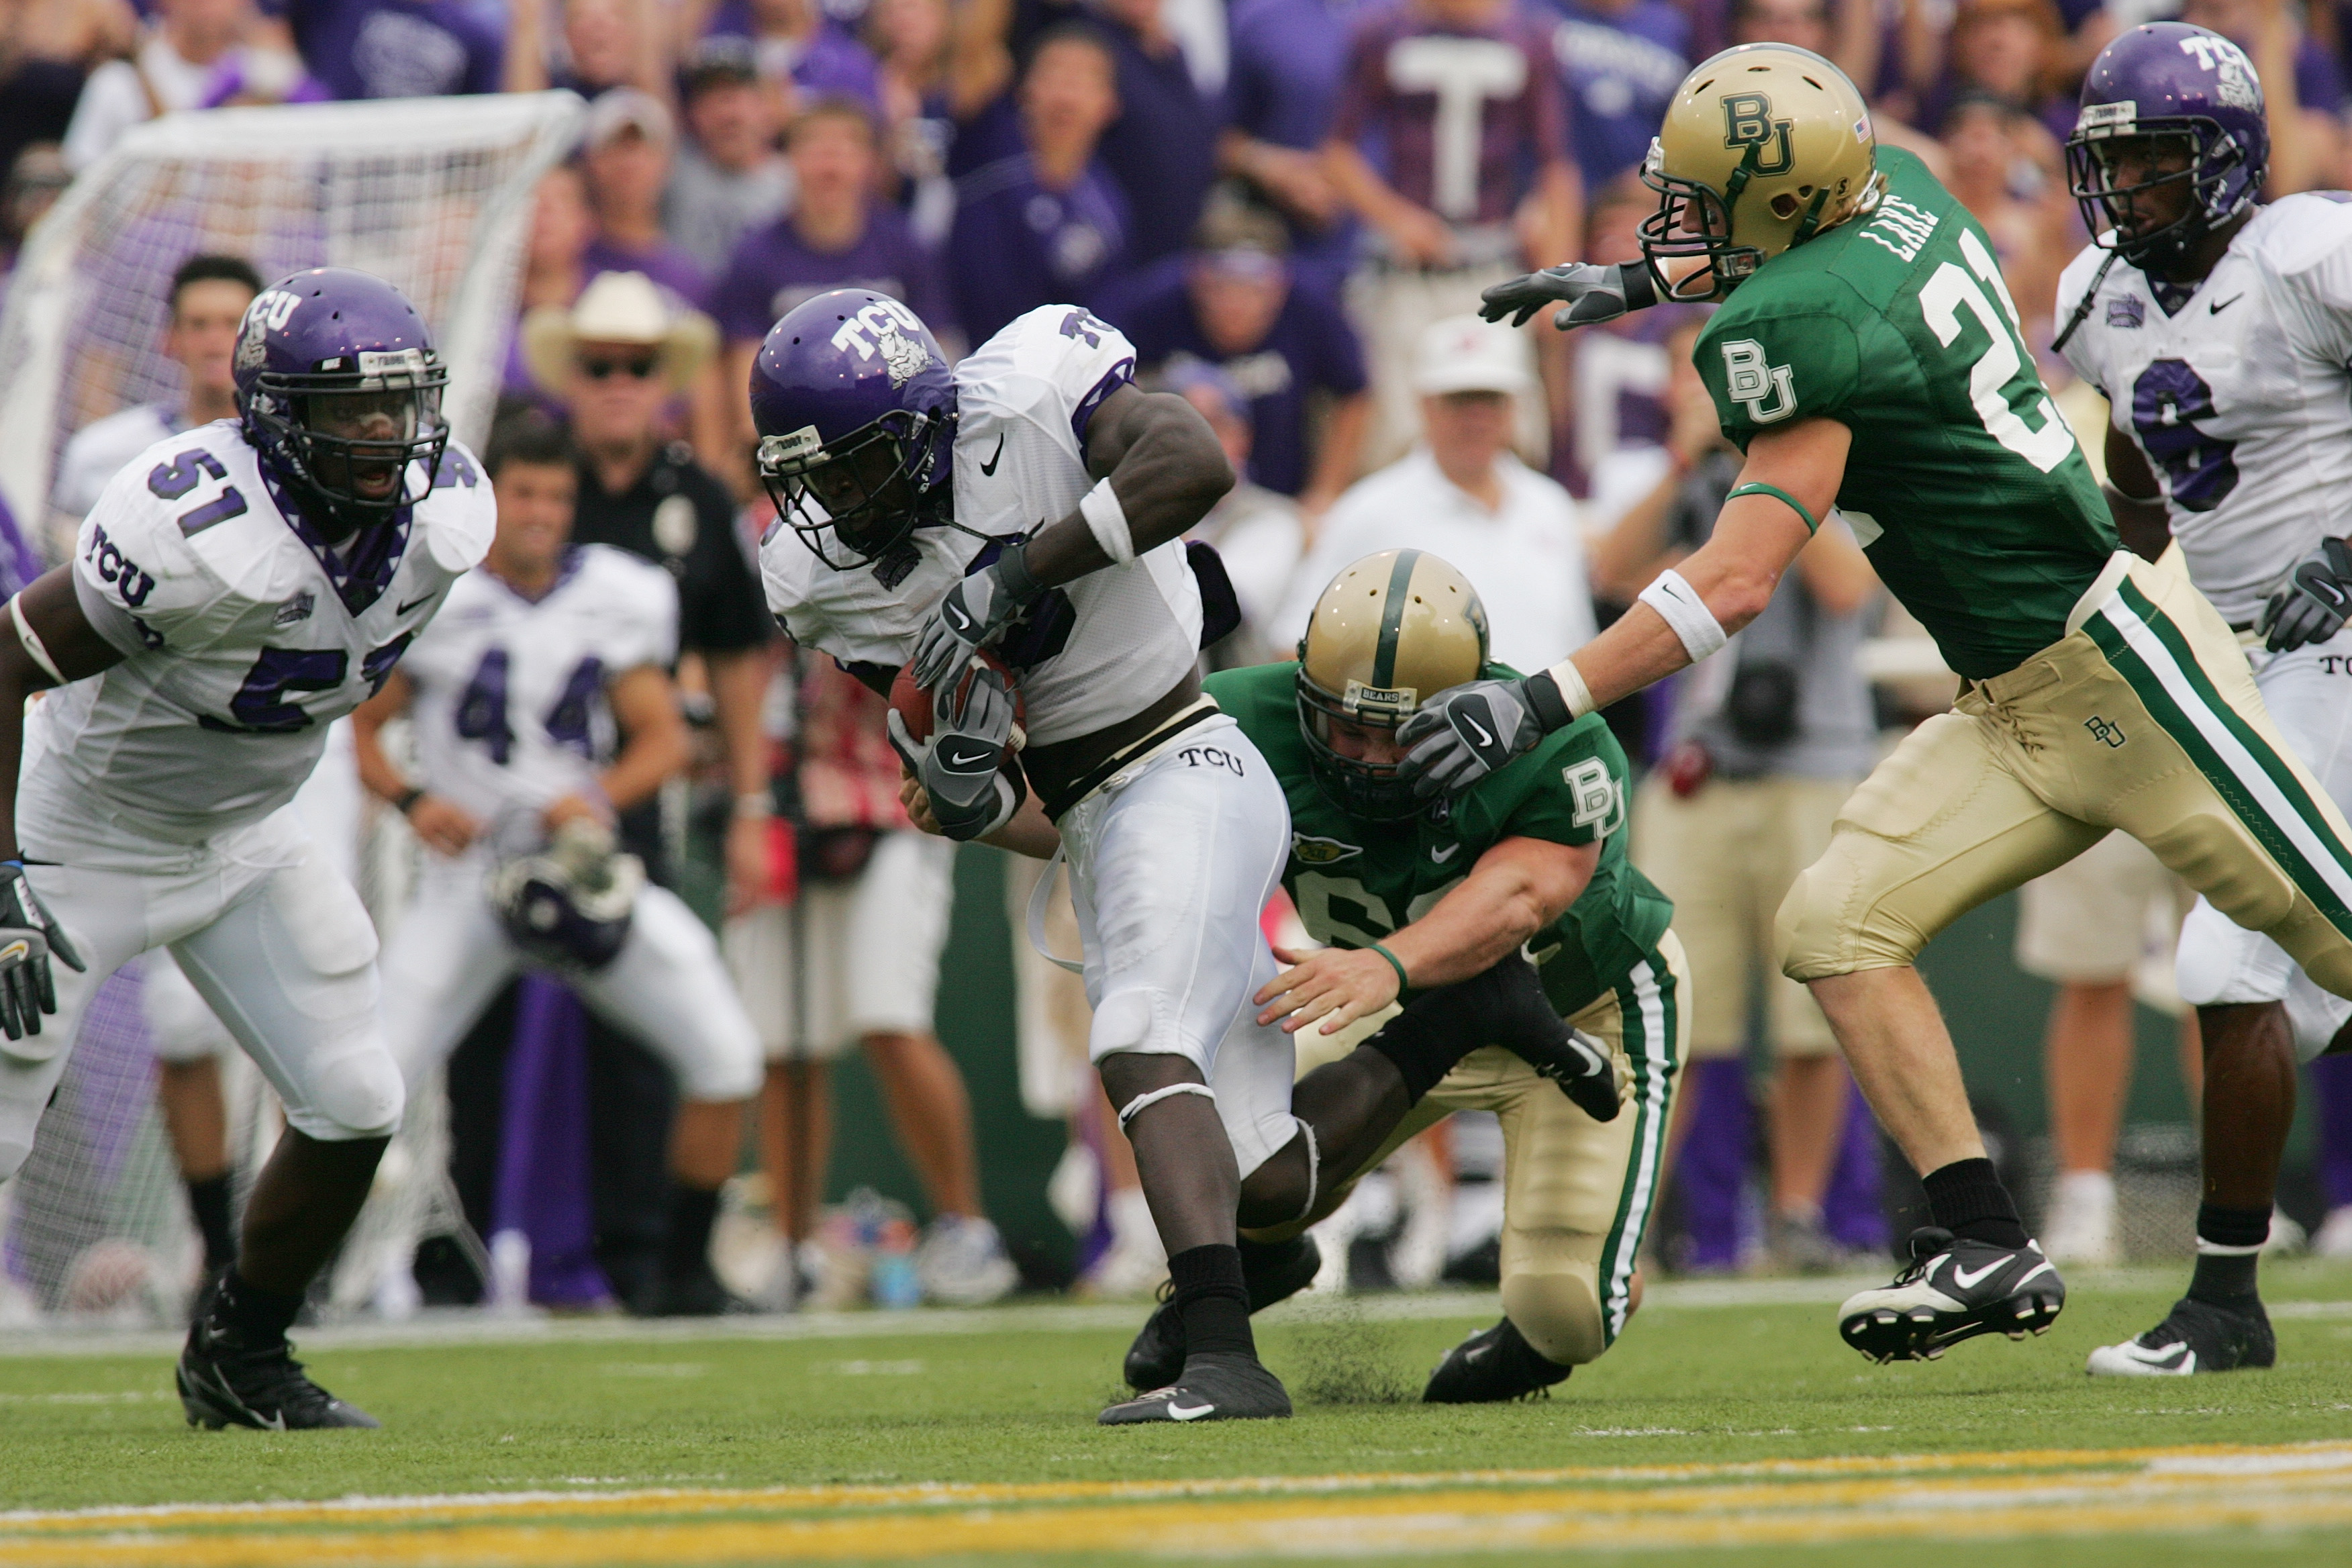 WACO, TX - SEPTEMBER 3:  Wide receiver Marcus Brock #3 of the TCU Horned Frogs runs with the ball during the game against the Baylor Bears on September 3, 2006 at Floyd Casey Stadium in Waco, Texas. TCU defeated Baylor 17-7.  (Photo by Ronald Martinez/Get